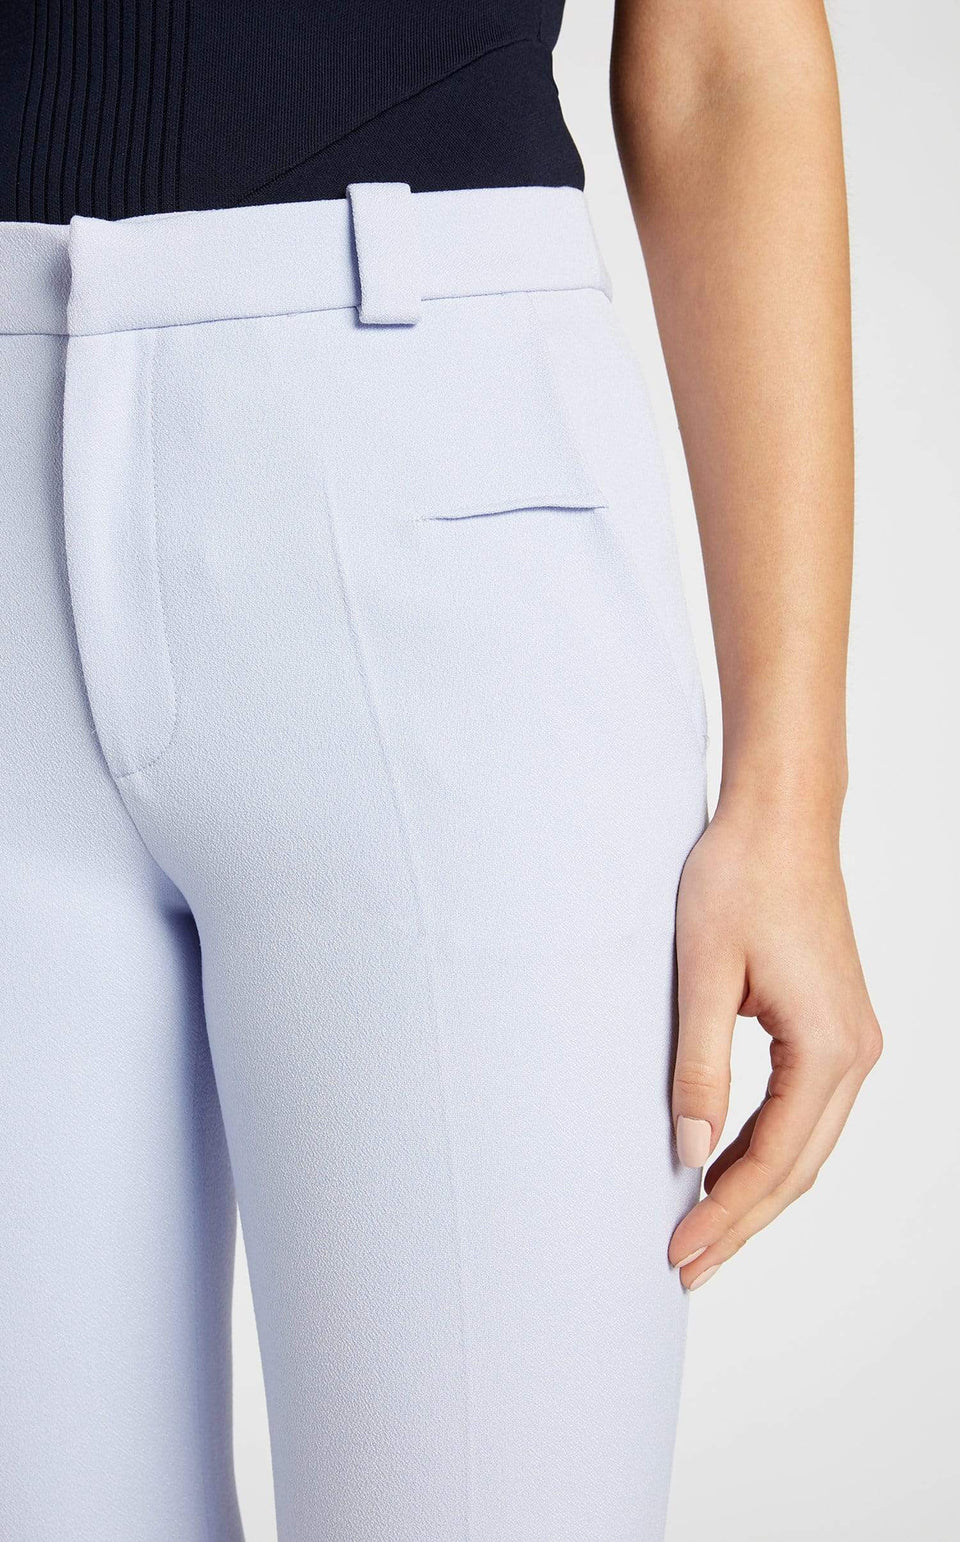 Lacerta Trouser In Ash Blue from Roland Mouret